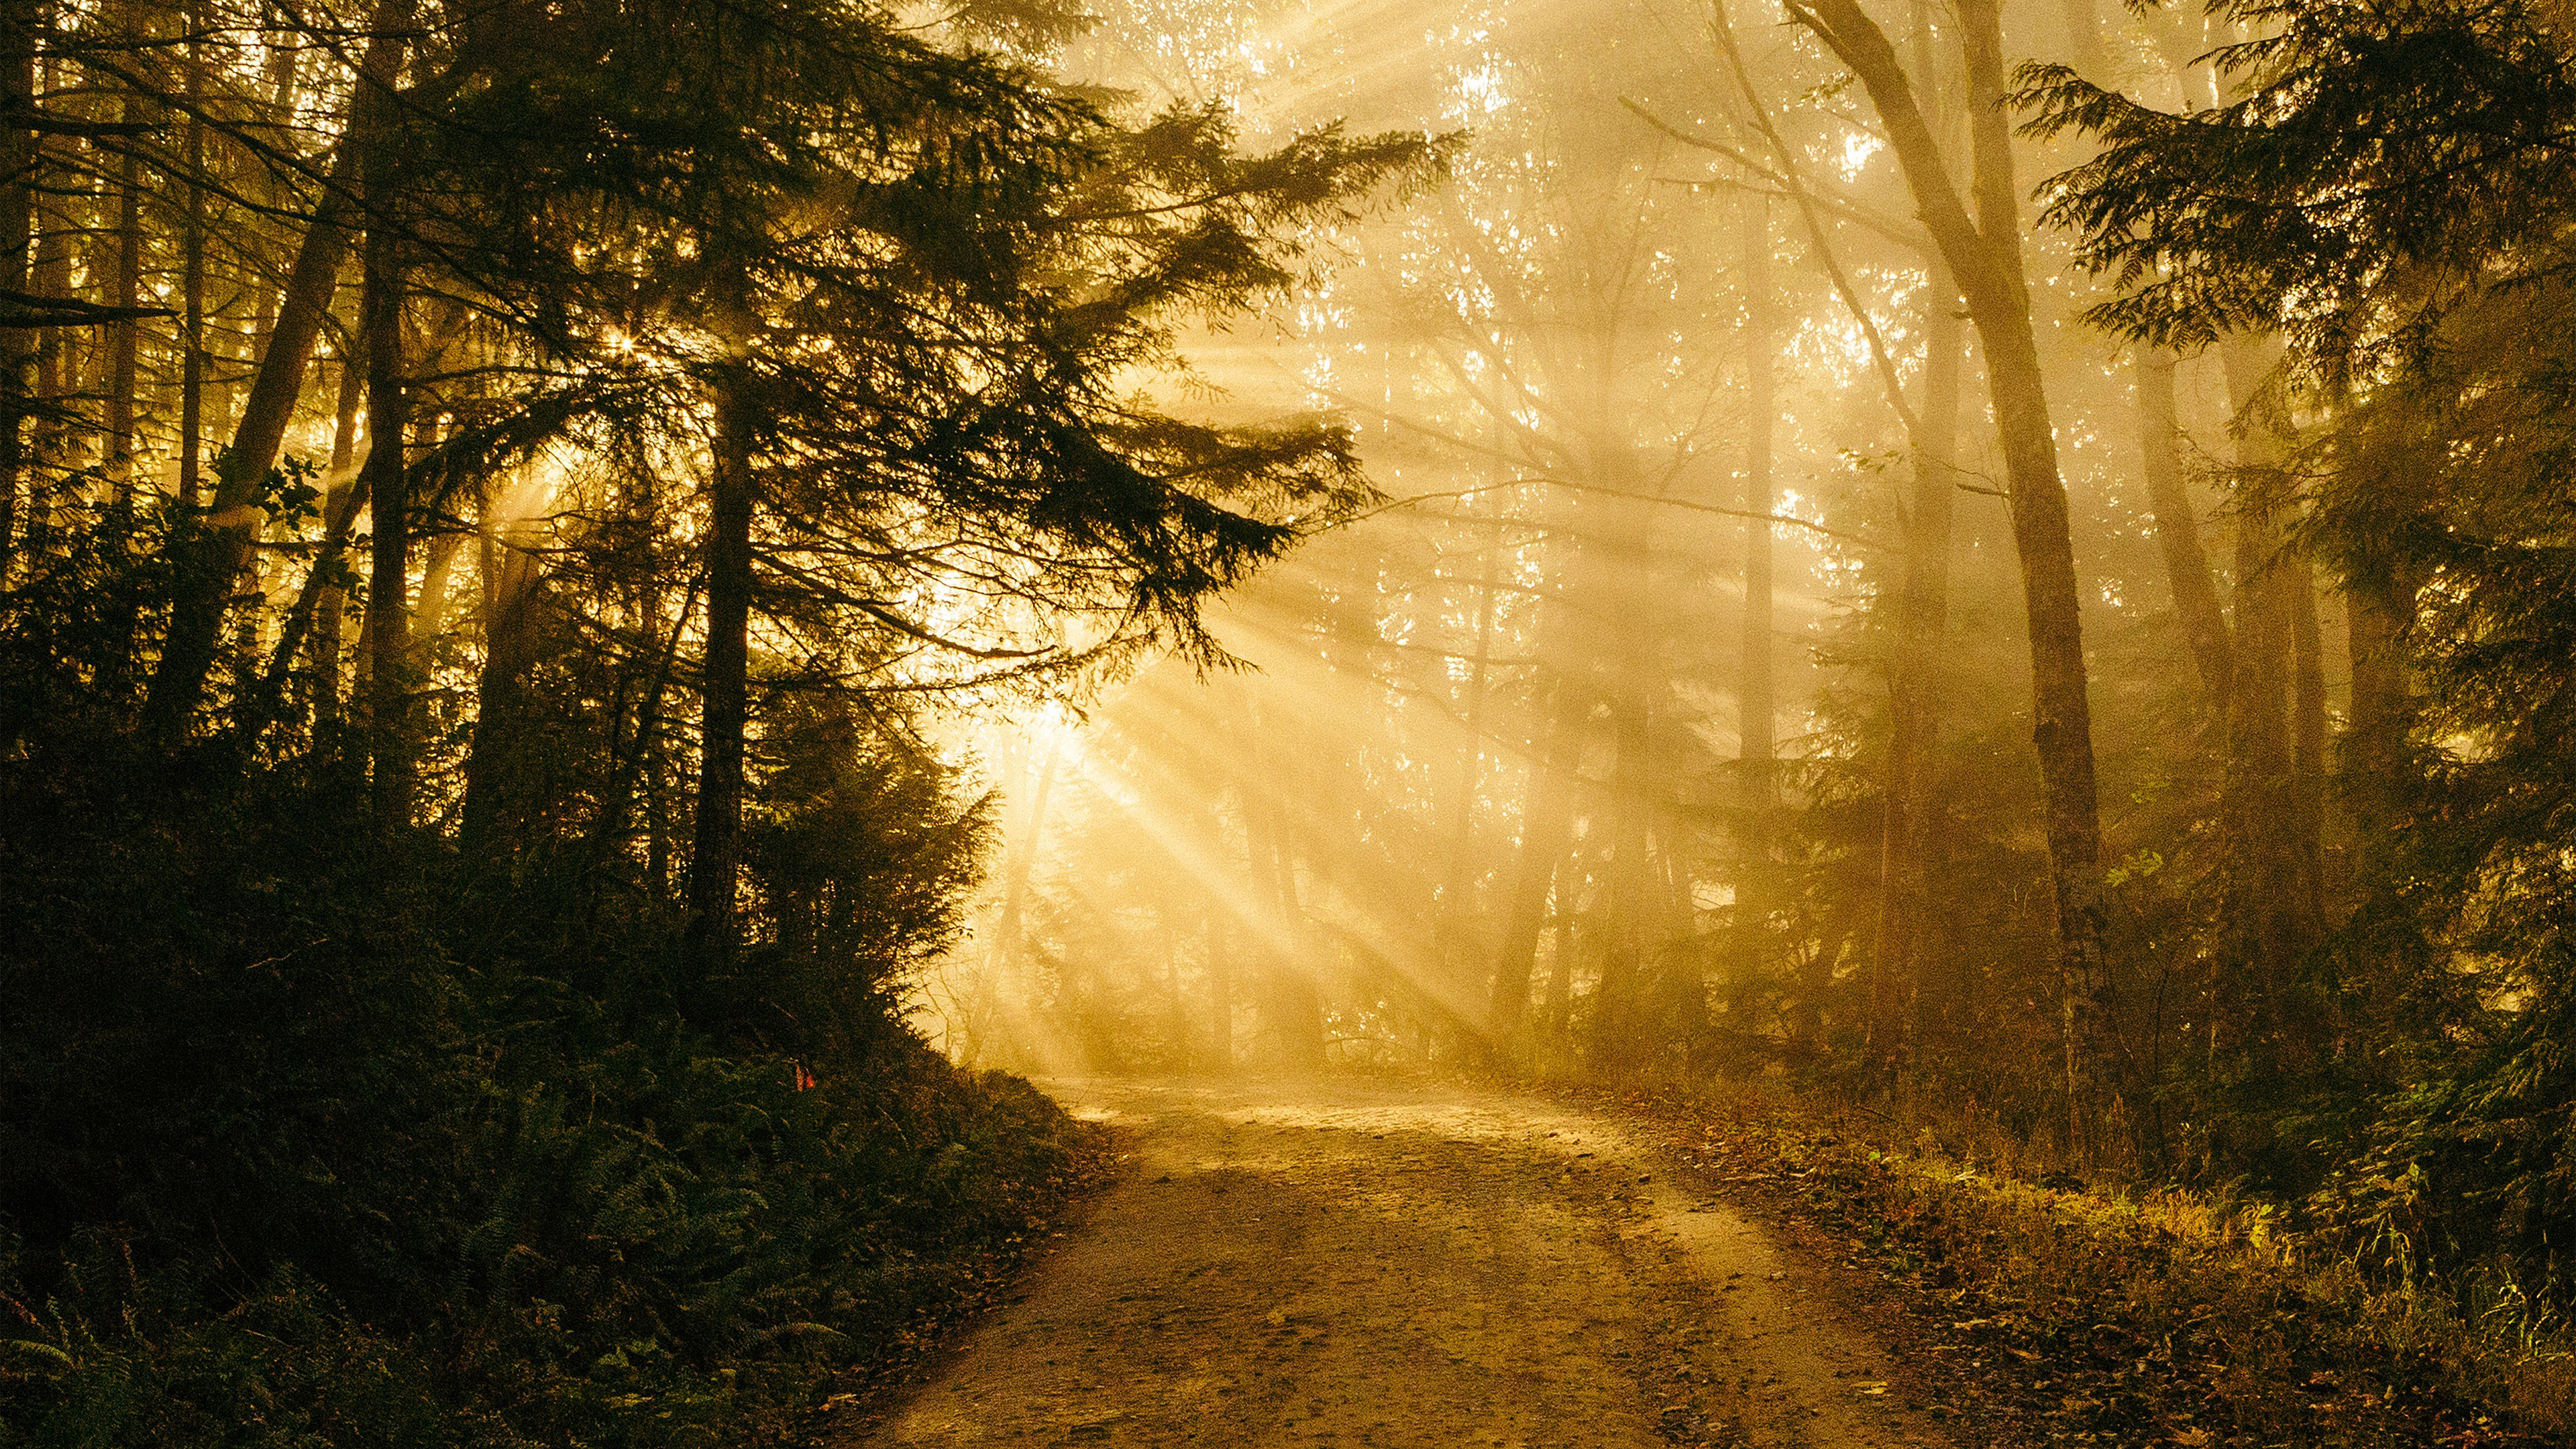 nh73-sunny-road-wood-forest-light-tree-nature-gold-wallpaper